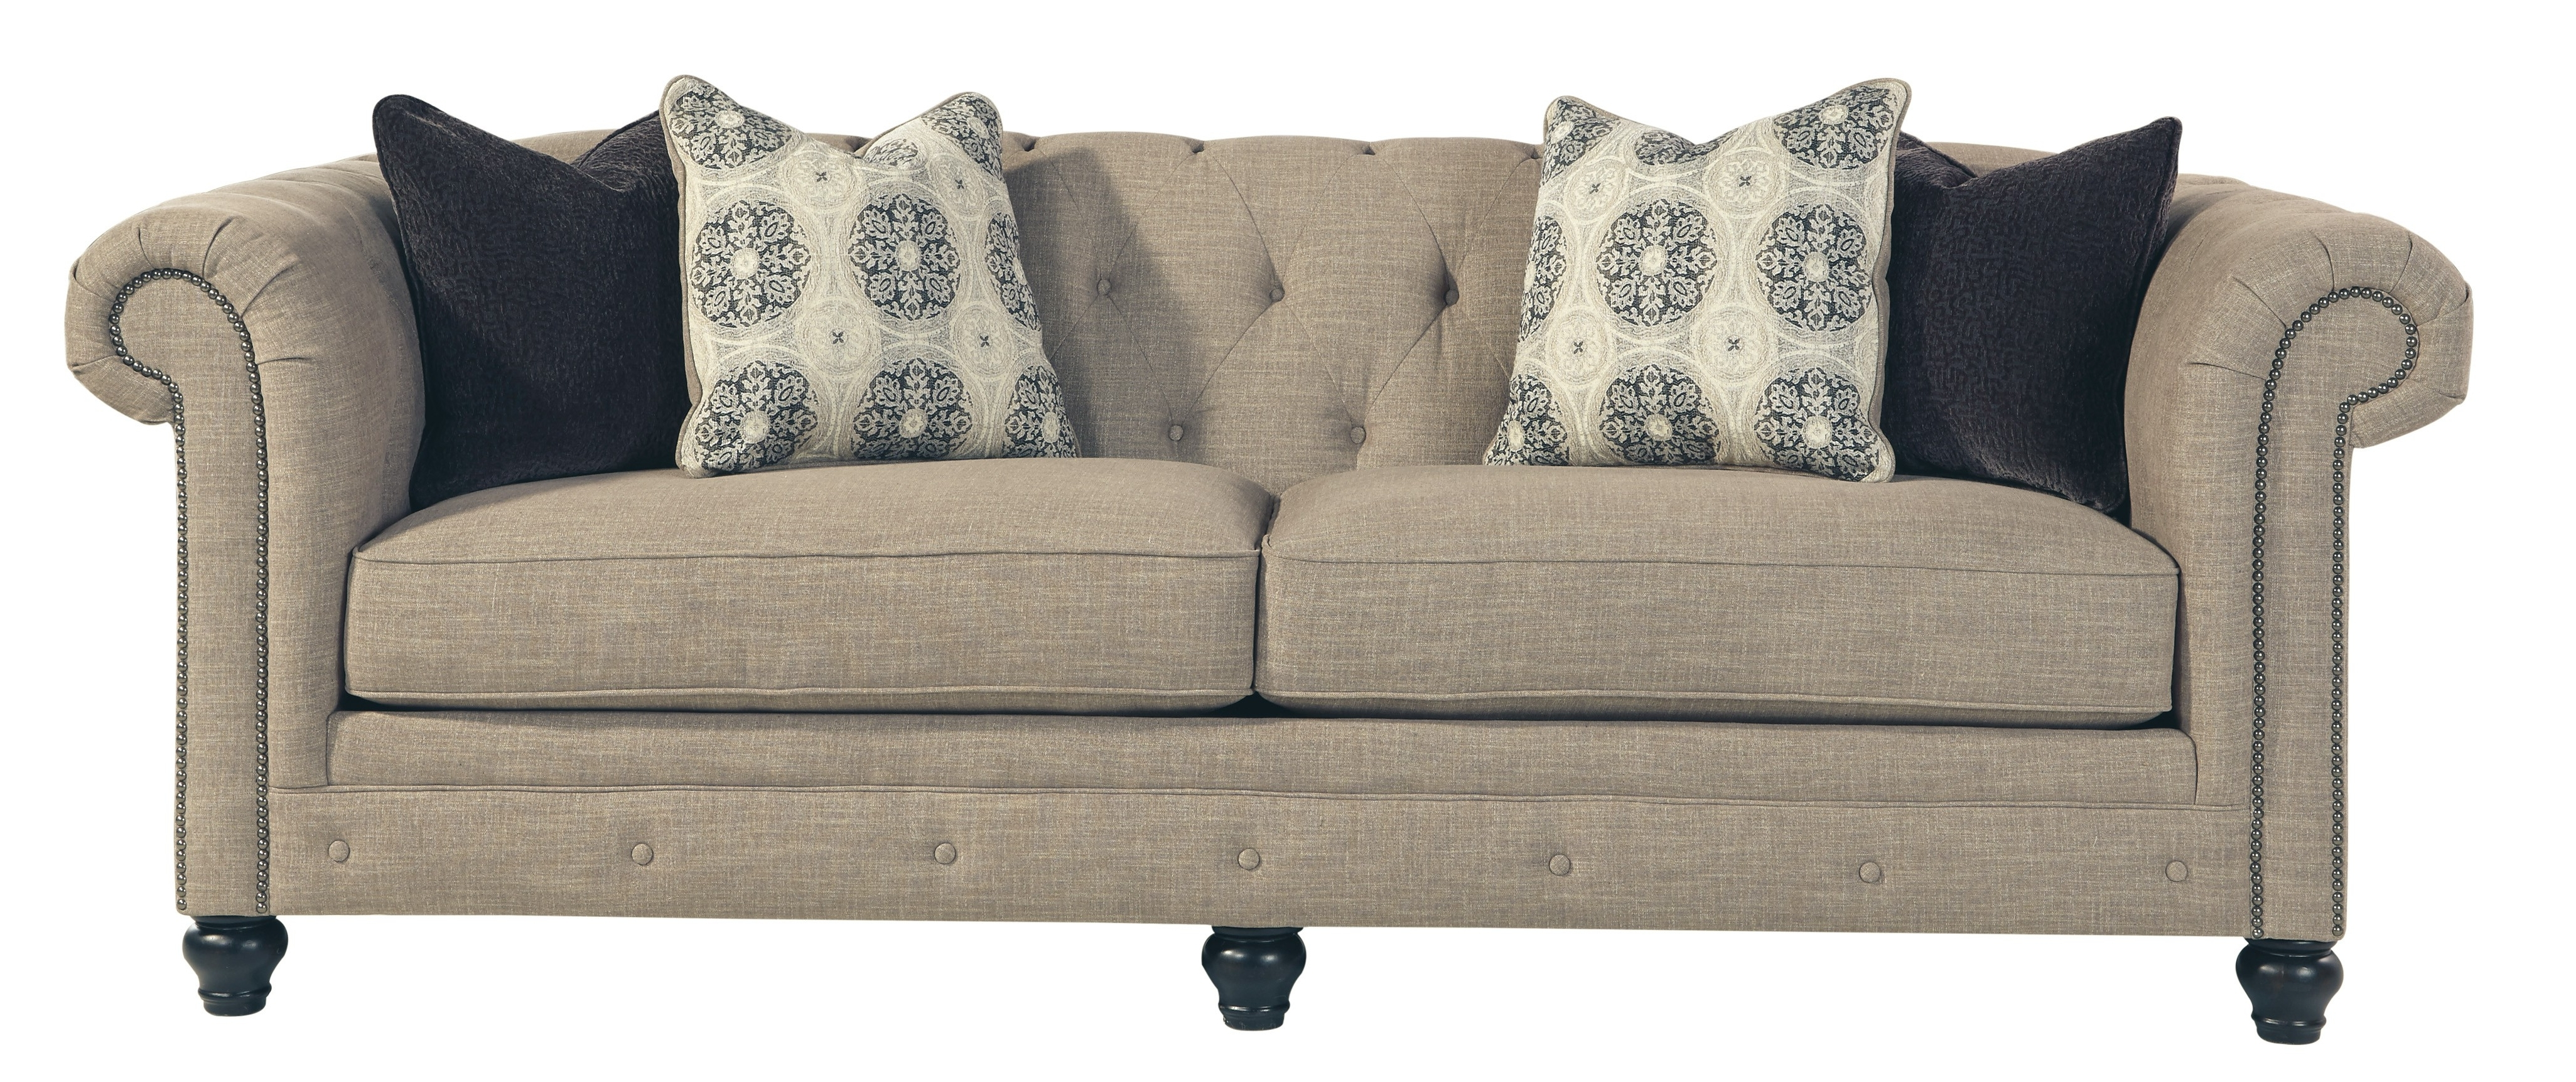 Ashley 9940238 Azlyn Tufted Back Sofa With Sepia Tone Fabric Uphostery Throughout 2019 Ashley Tufted Sofas (View 2 of 20)